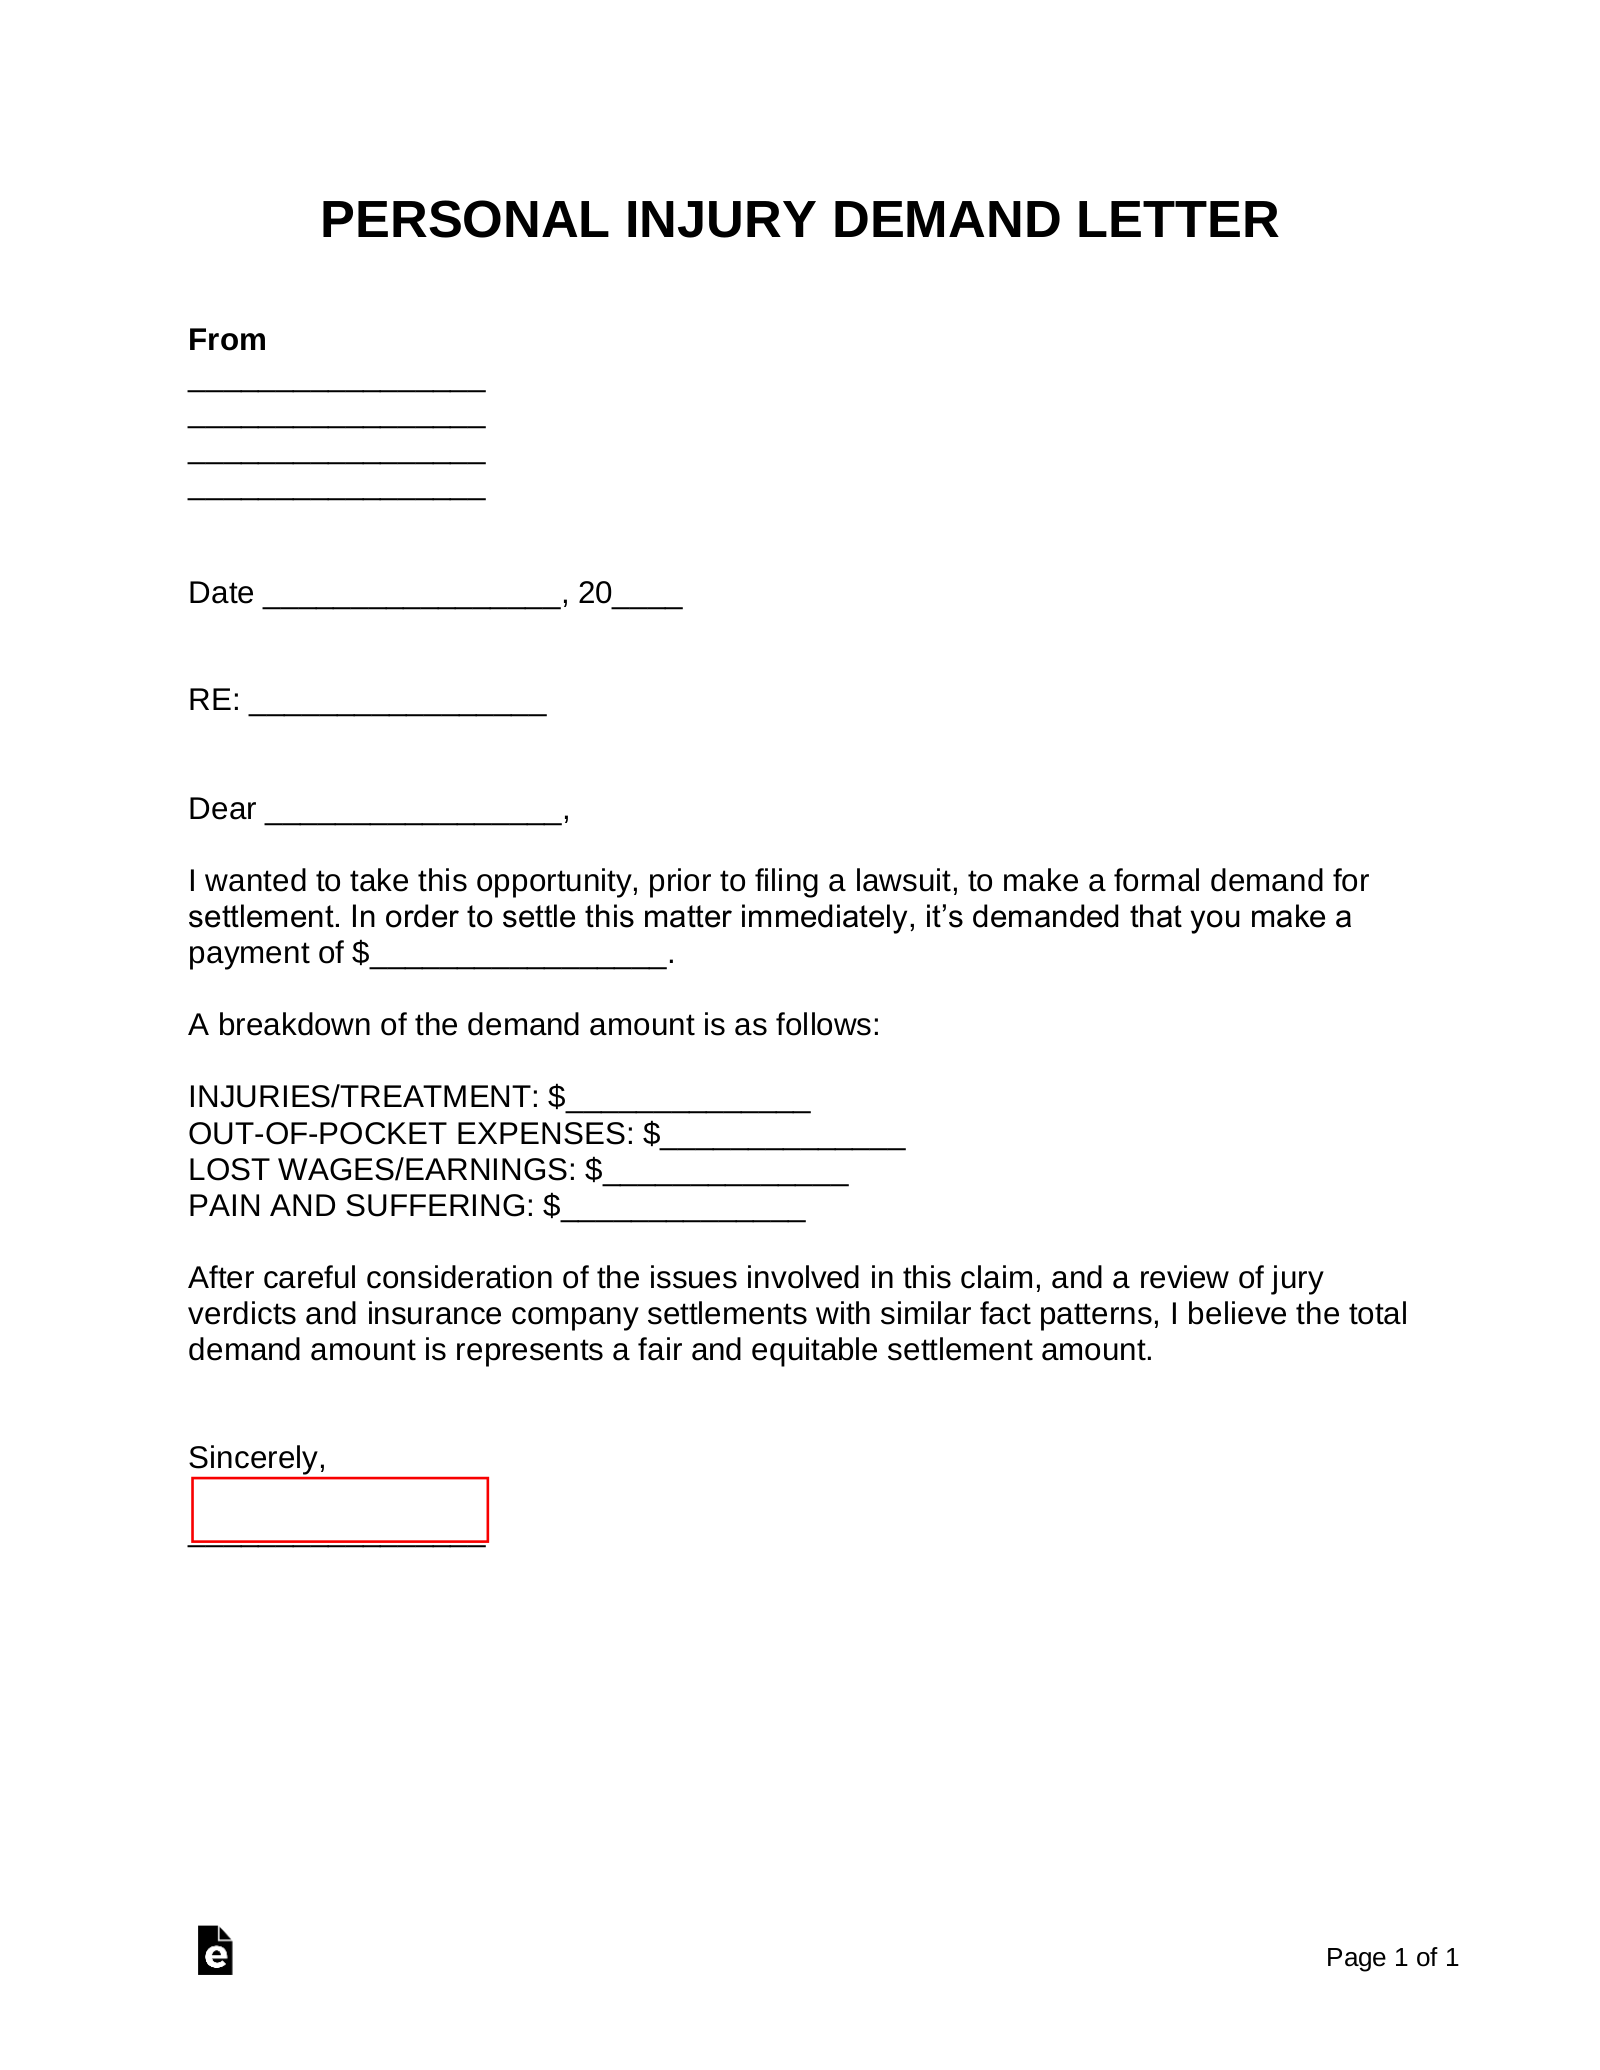 FREE 38+ Demand Letter Samples in PDF | Google Docs ... |Personal Injury Demand Letter Form